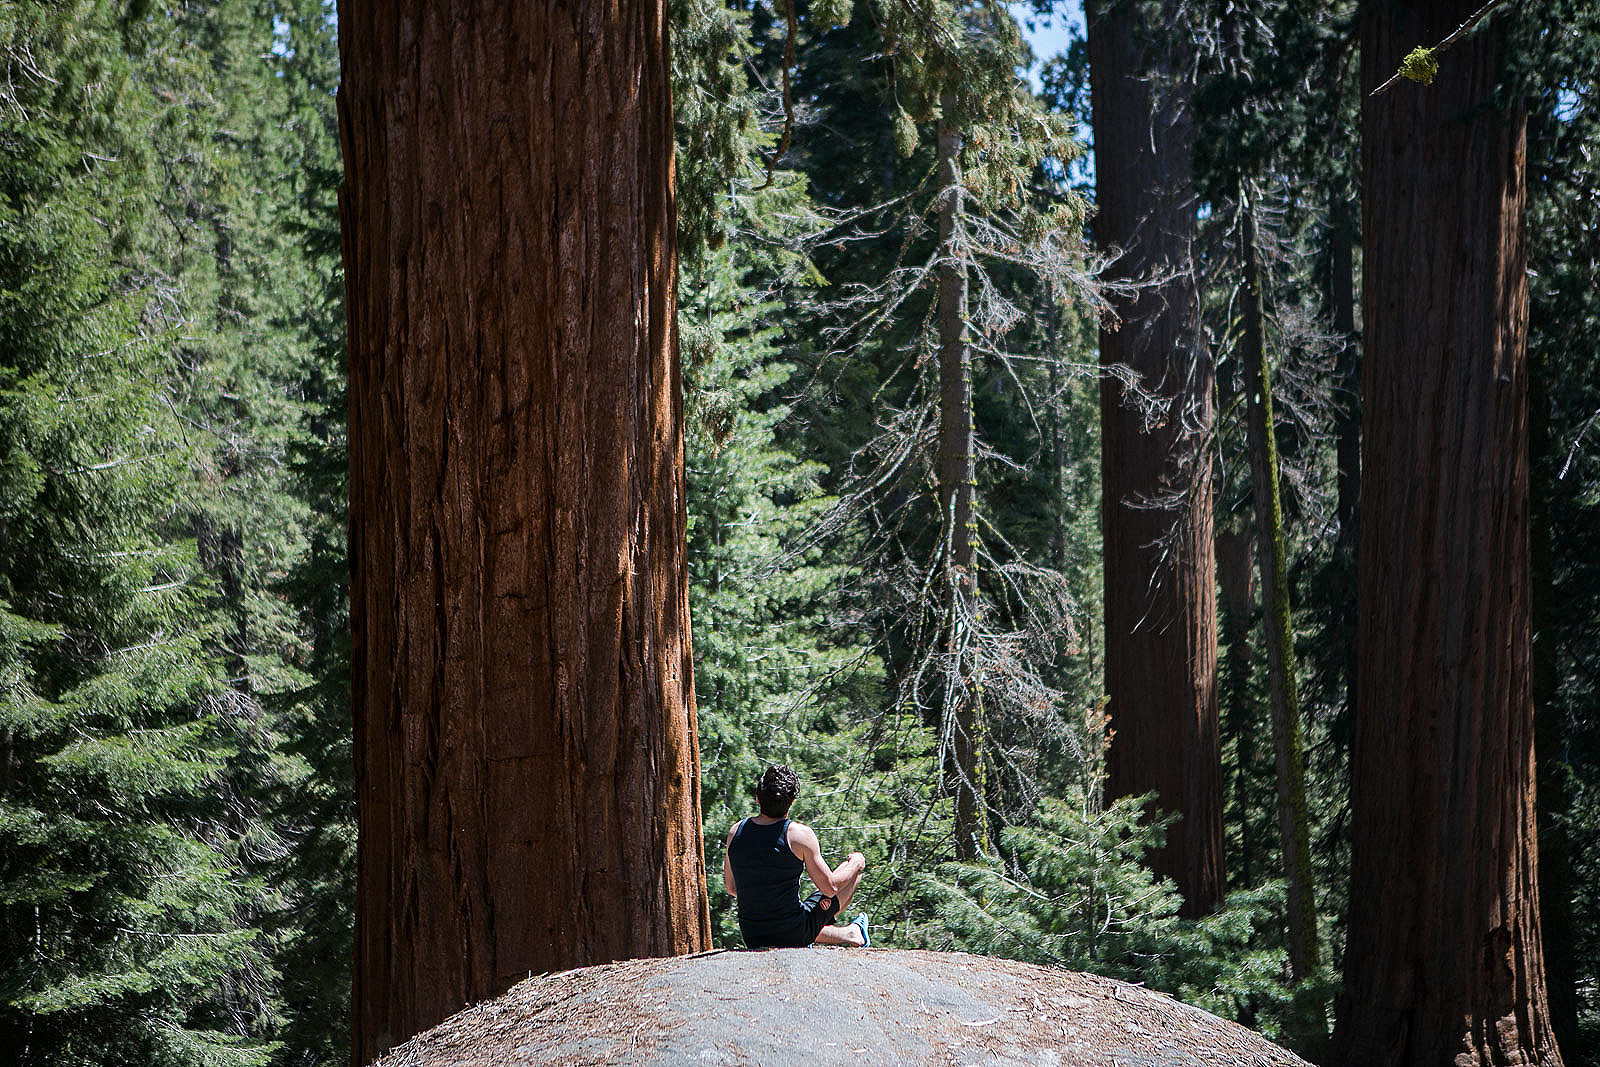 One Day in Kings Canyon and Sequoia National Parks: Where to Go & What to See